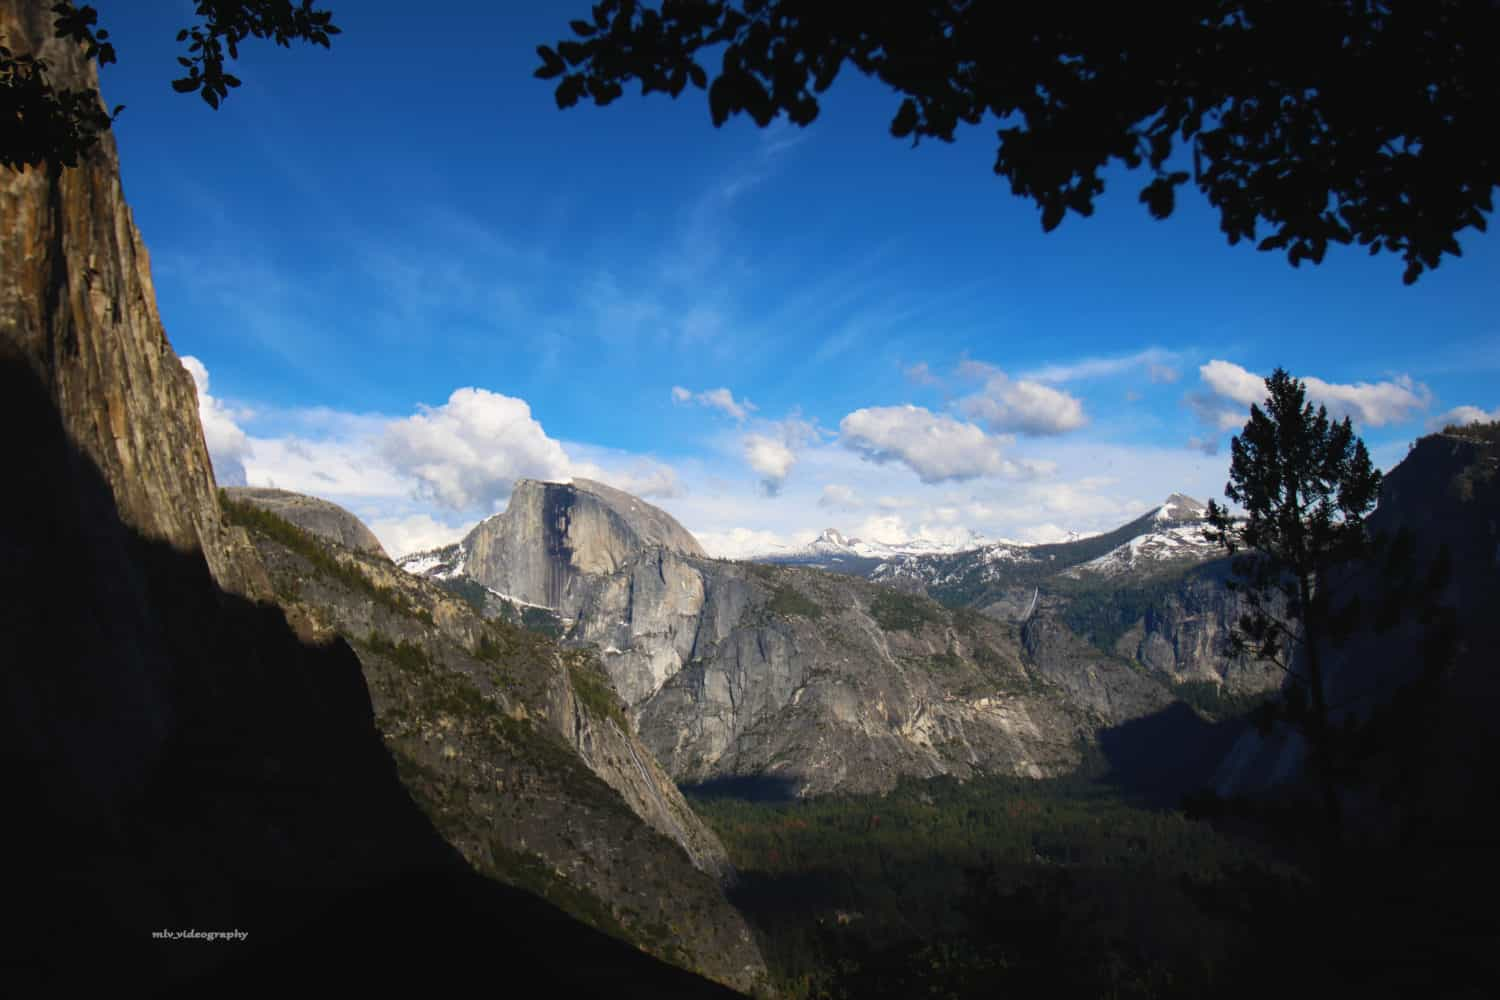 Shot capturing the beautiful natural landscape of Yosemite National Park